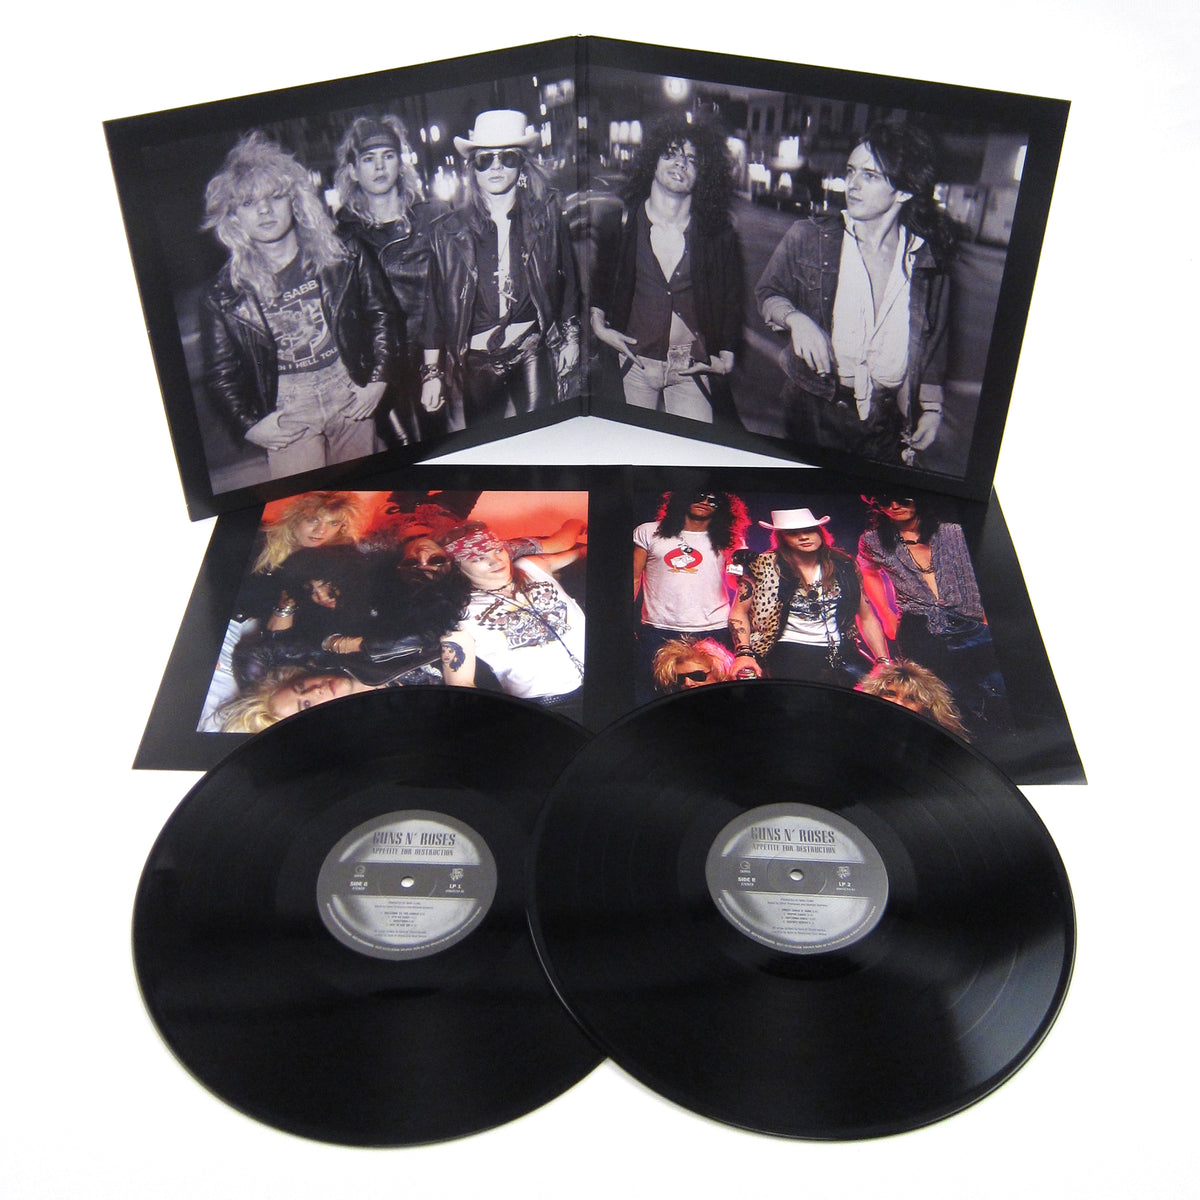 Guns N' Roses: Appetite For Destruction Deluxe Edition (180g) Vinyl 2LP